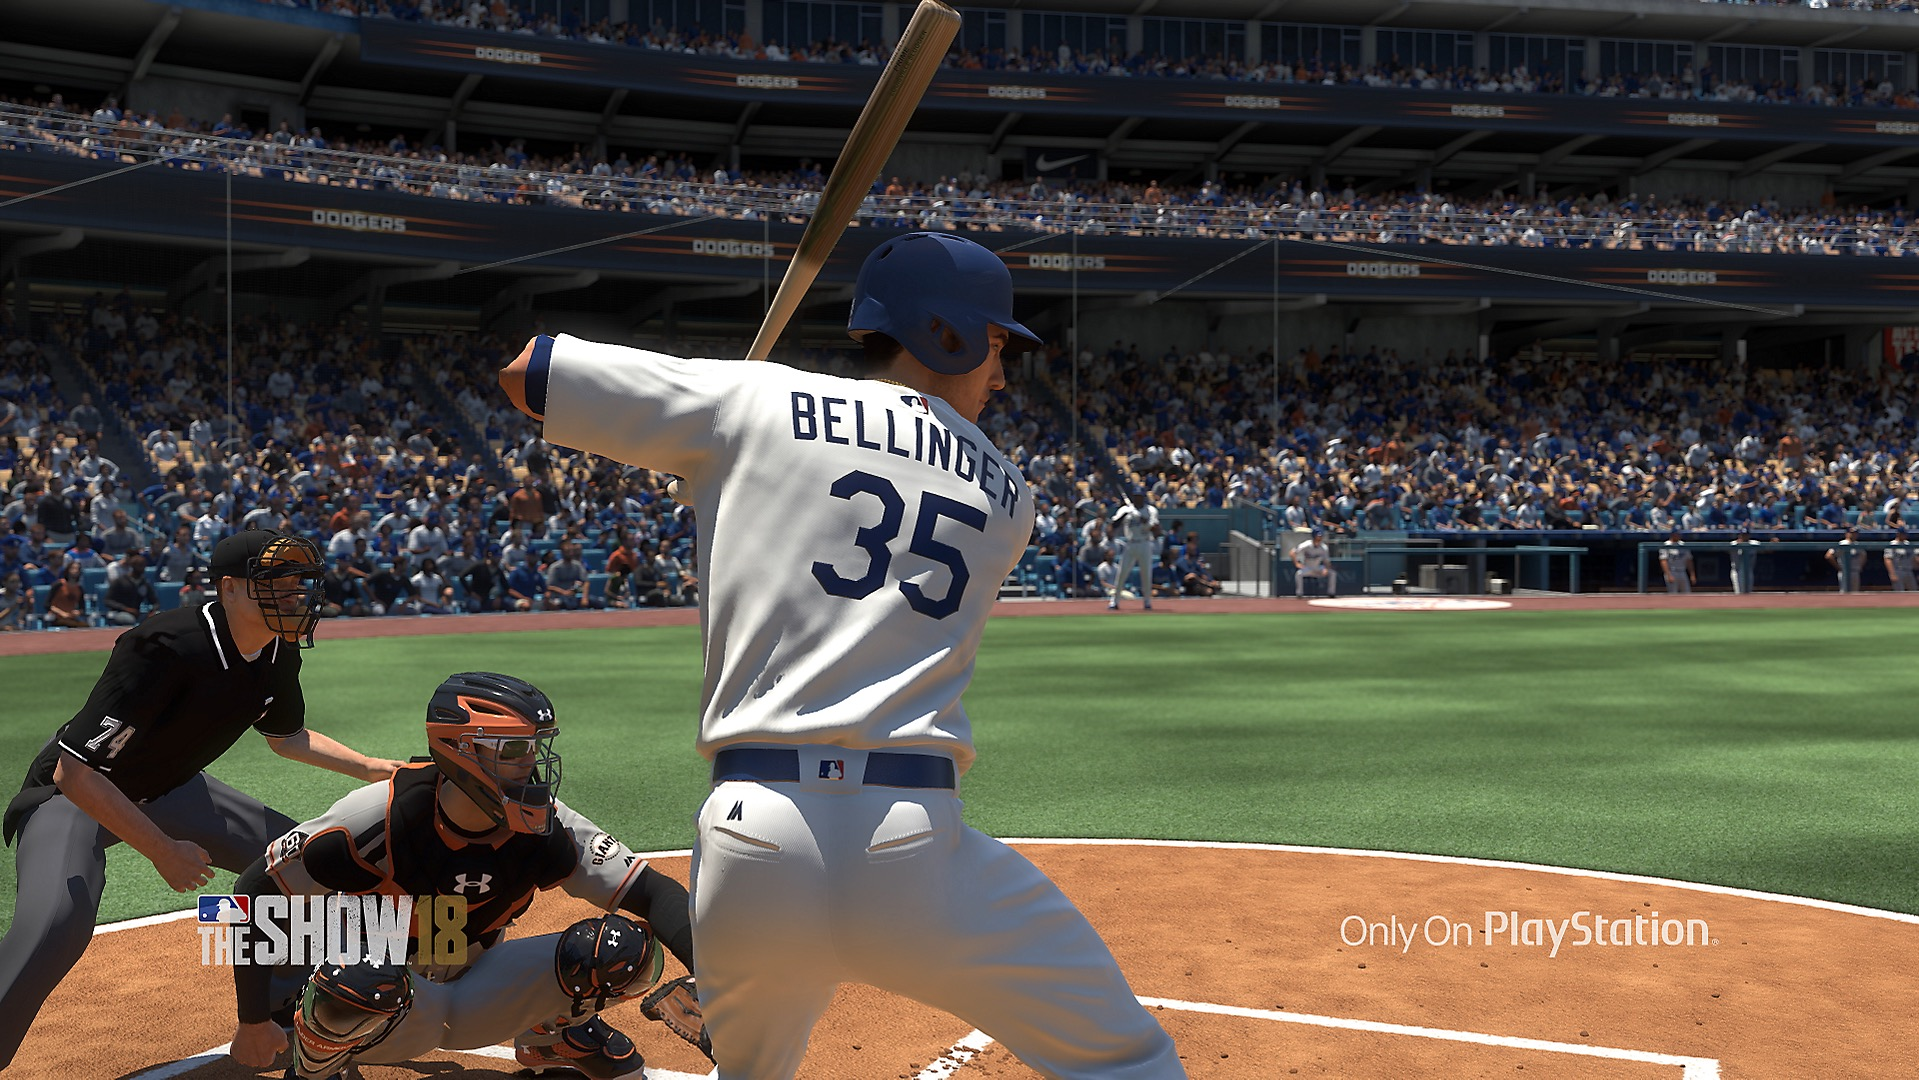 mlb-the-show-18-bellinger-screen-01-ps4-us-30jan18.jpg